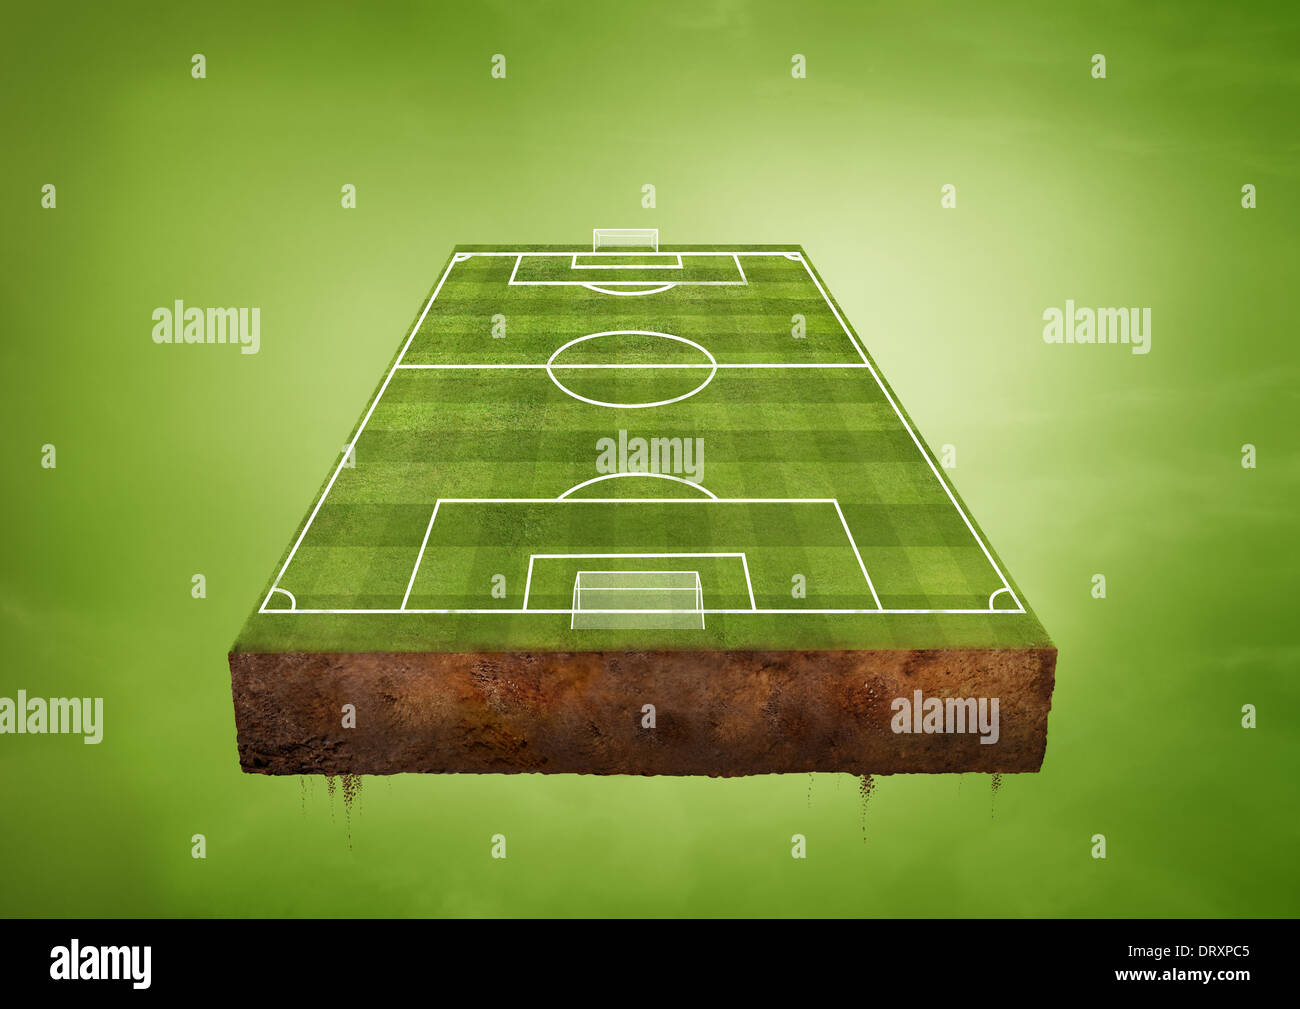 Un terrain de football vert flottant. Concept sportif. Photo Stock